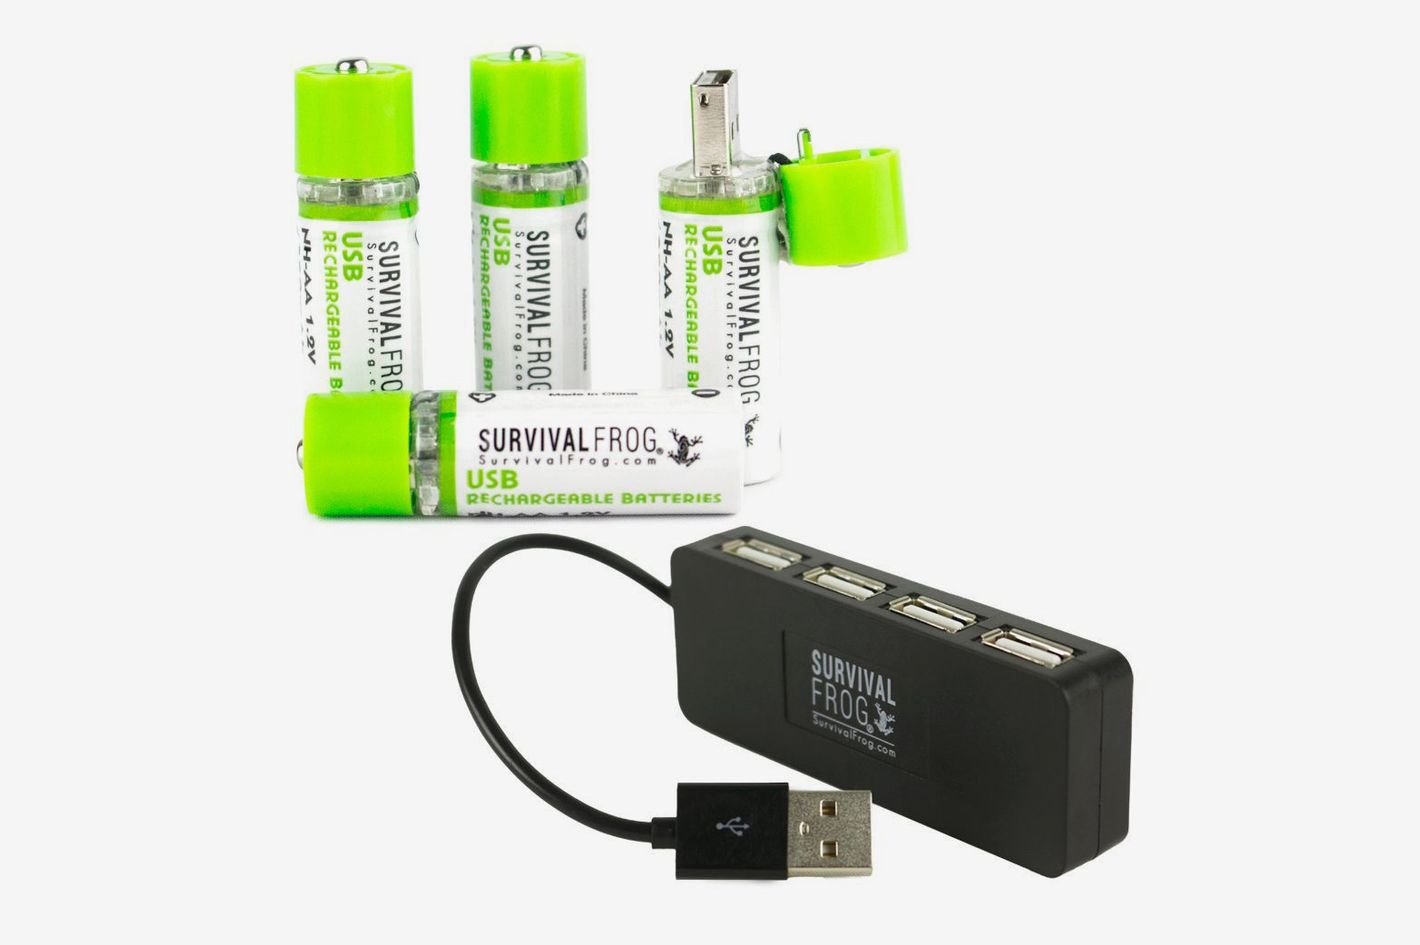 Survival Frog EasyPower USB AA Rechargeable Batteries (4-Pack)